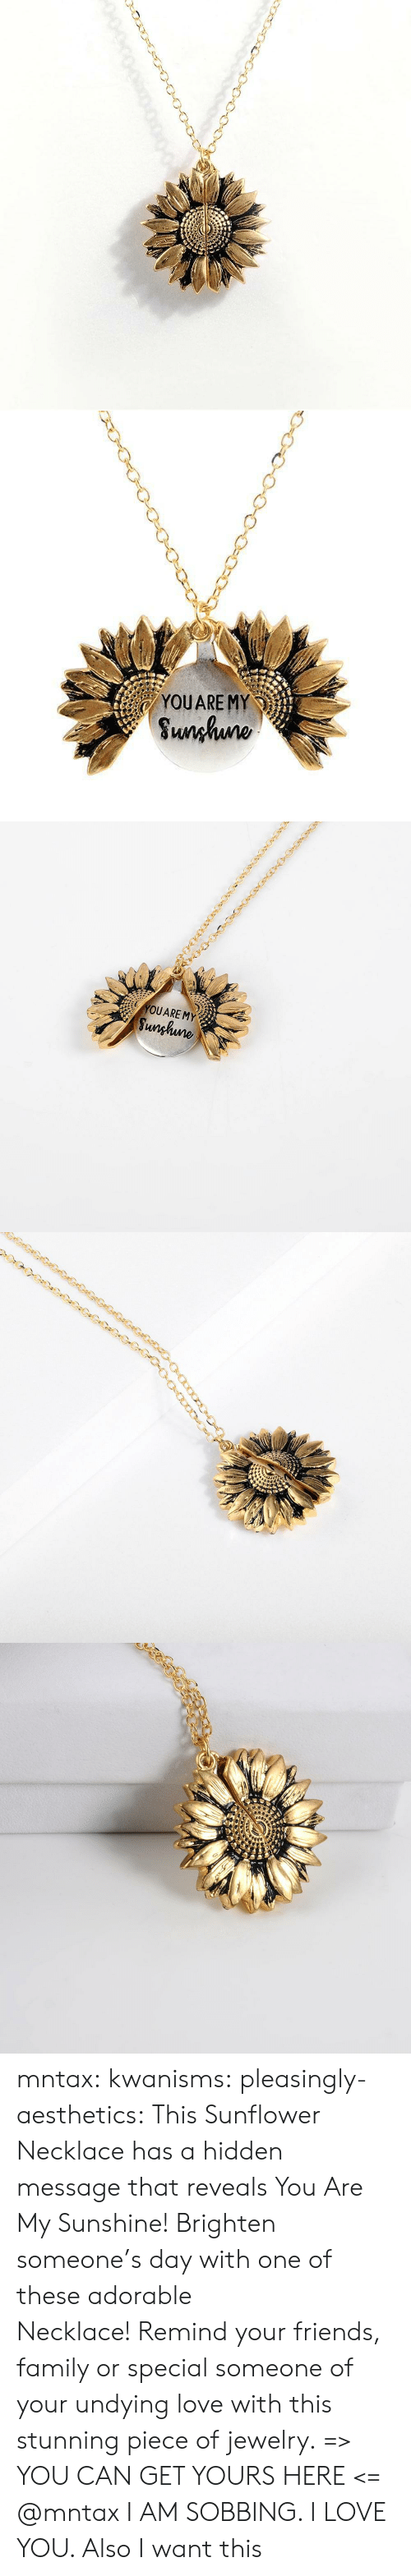 Family, Friends, and Love: YOUARE MY  Sunhuno   YOUARE MY  Sunghune mntax:  kwanisms:  pleasingly-aesthetics:  This Sunflower Necklace has a hidden message that reveals You Are My Sunshine! Brighten someone's day with one of these adorable Necklace! Remind your friends, family or special someone of your undying love with this stunning piece of jewelry. => YOU CAN GET YOURS HERE <=   @mntax   I AM SOBBING. I LOVE YOU. Also I want this